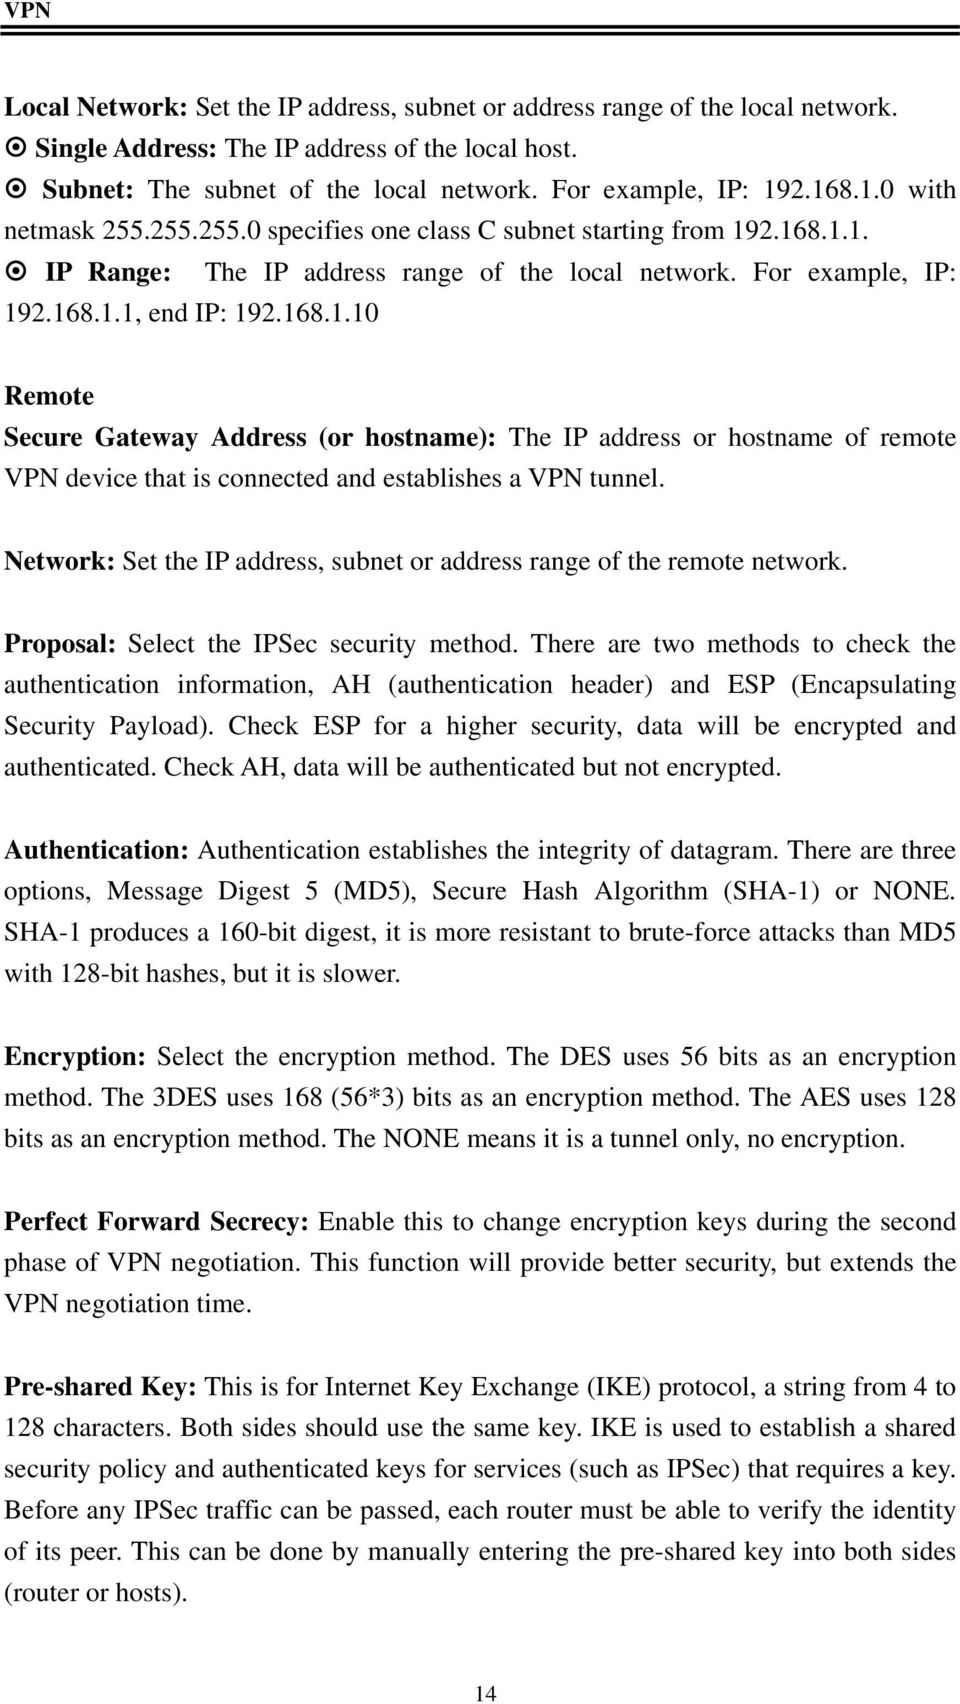 Network: Set the IP address, subnet or address range of the remote network. Proposal: Select the IPSec security method.